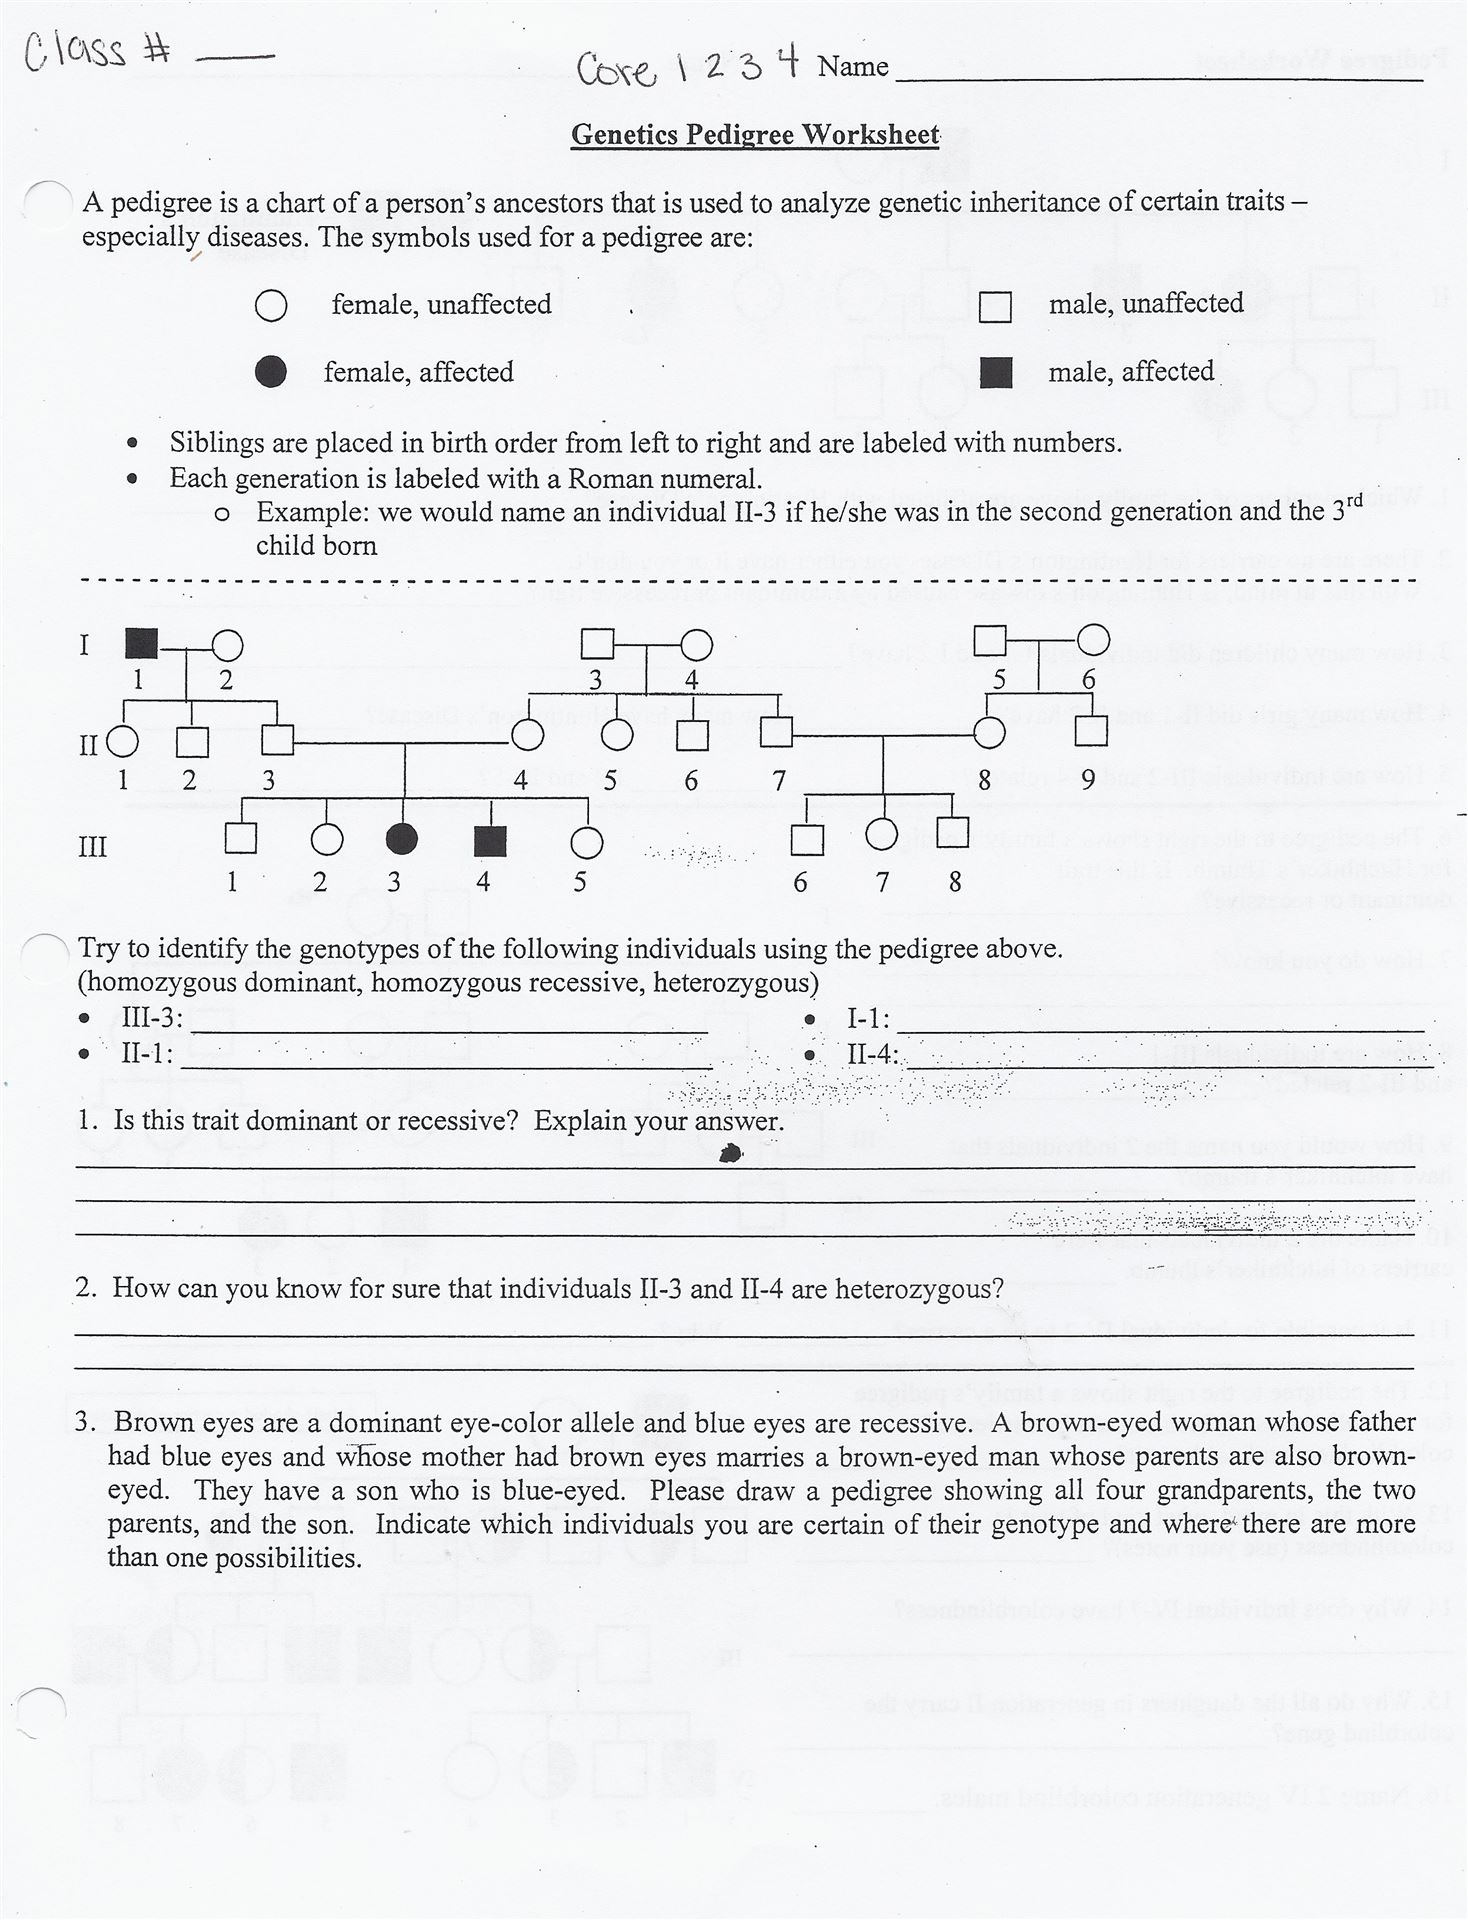 Biology Pedigree Worksheets - Worksheets